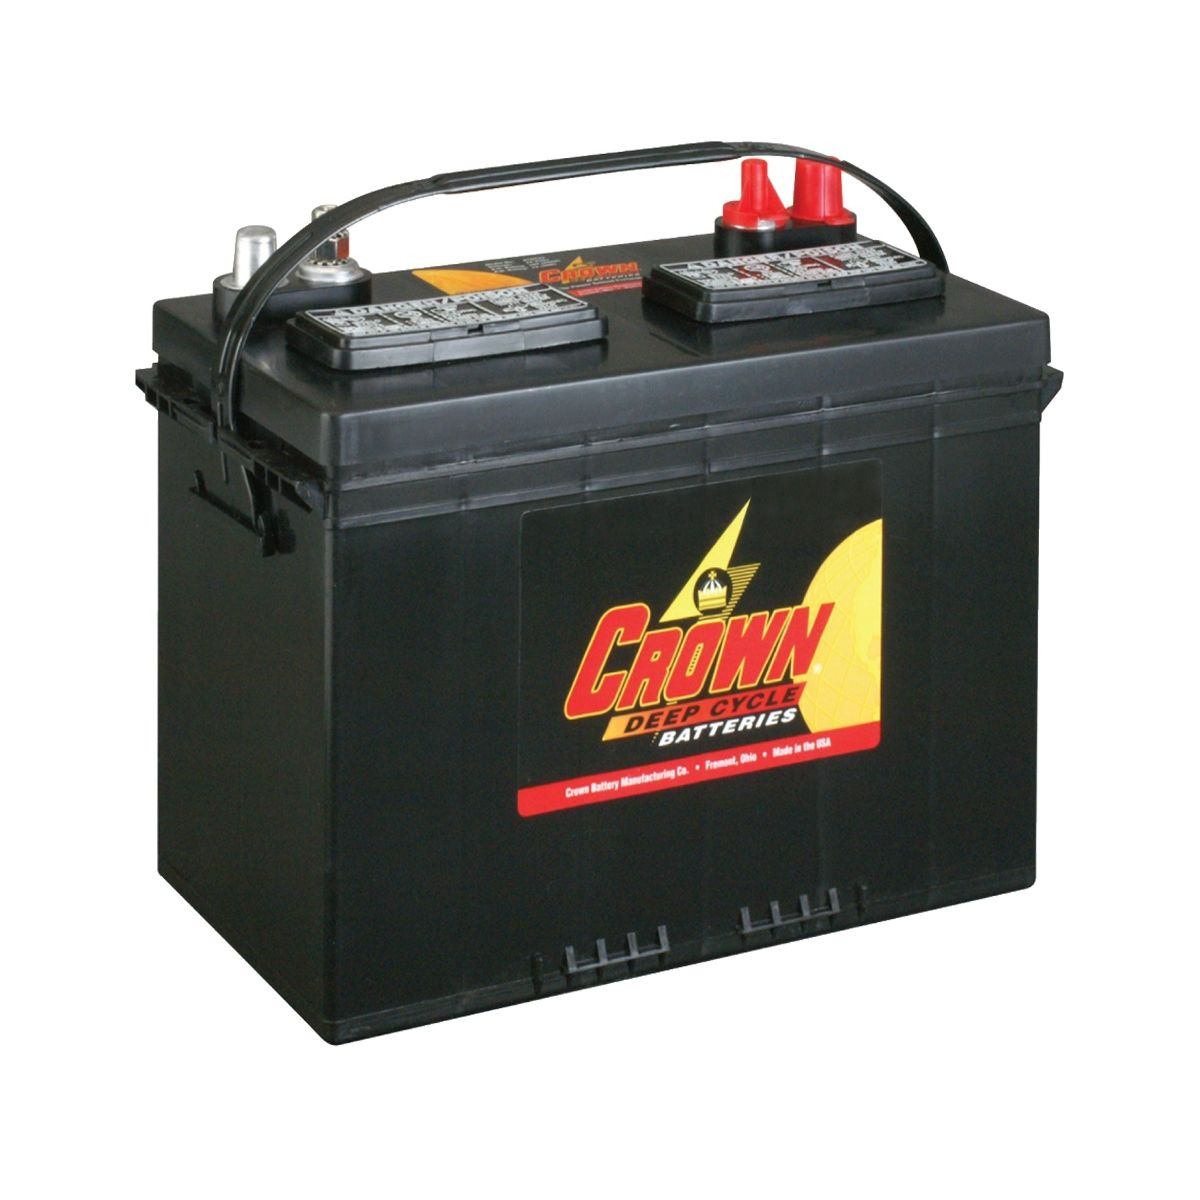 crown 27dc105 12v 105ah marine deep cycle battery battery ex vat buy online from the. Black Bedroom Furniture Sets. Home Design Ideas